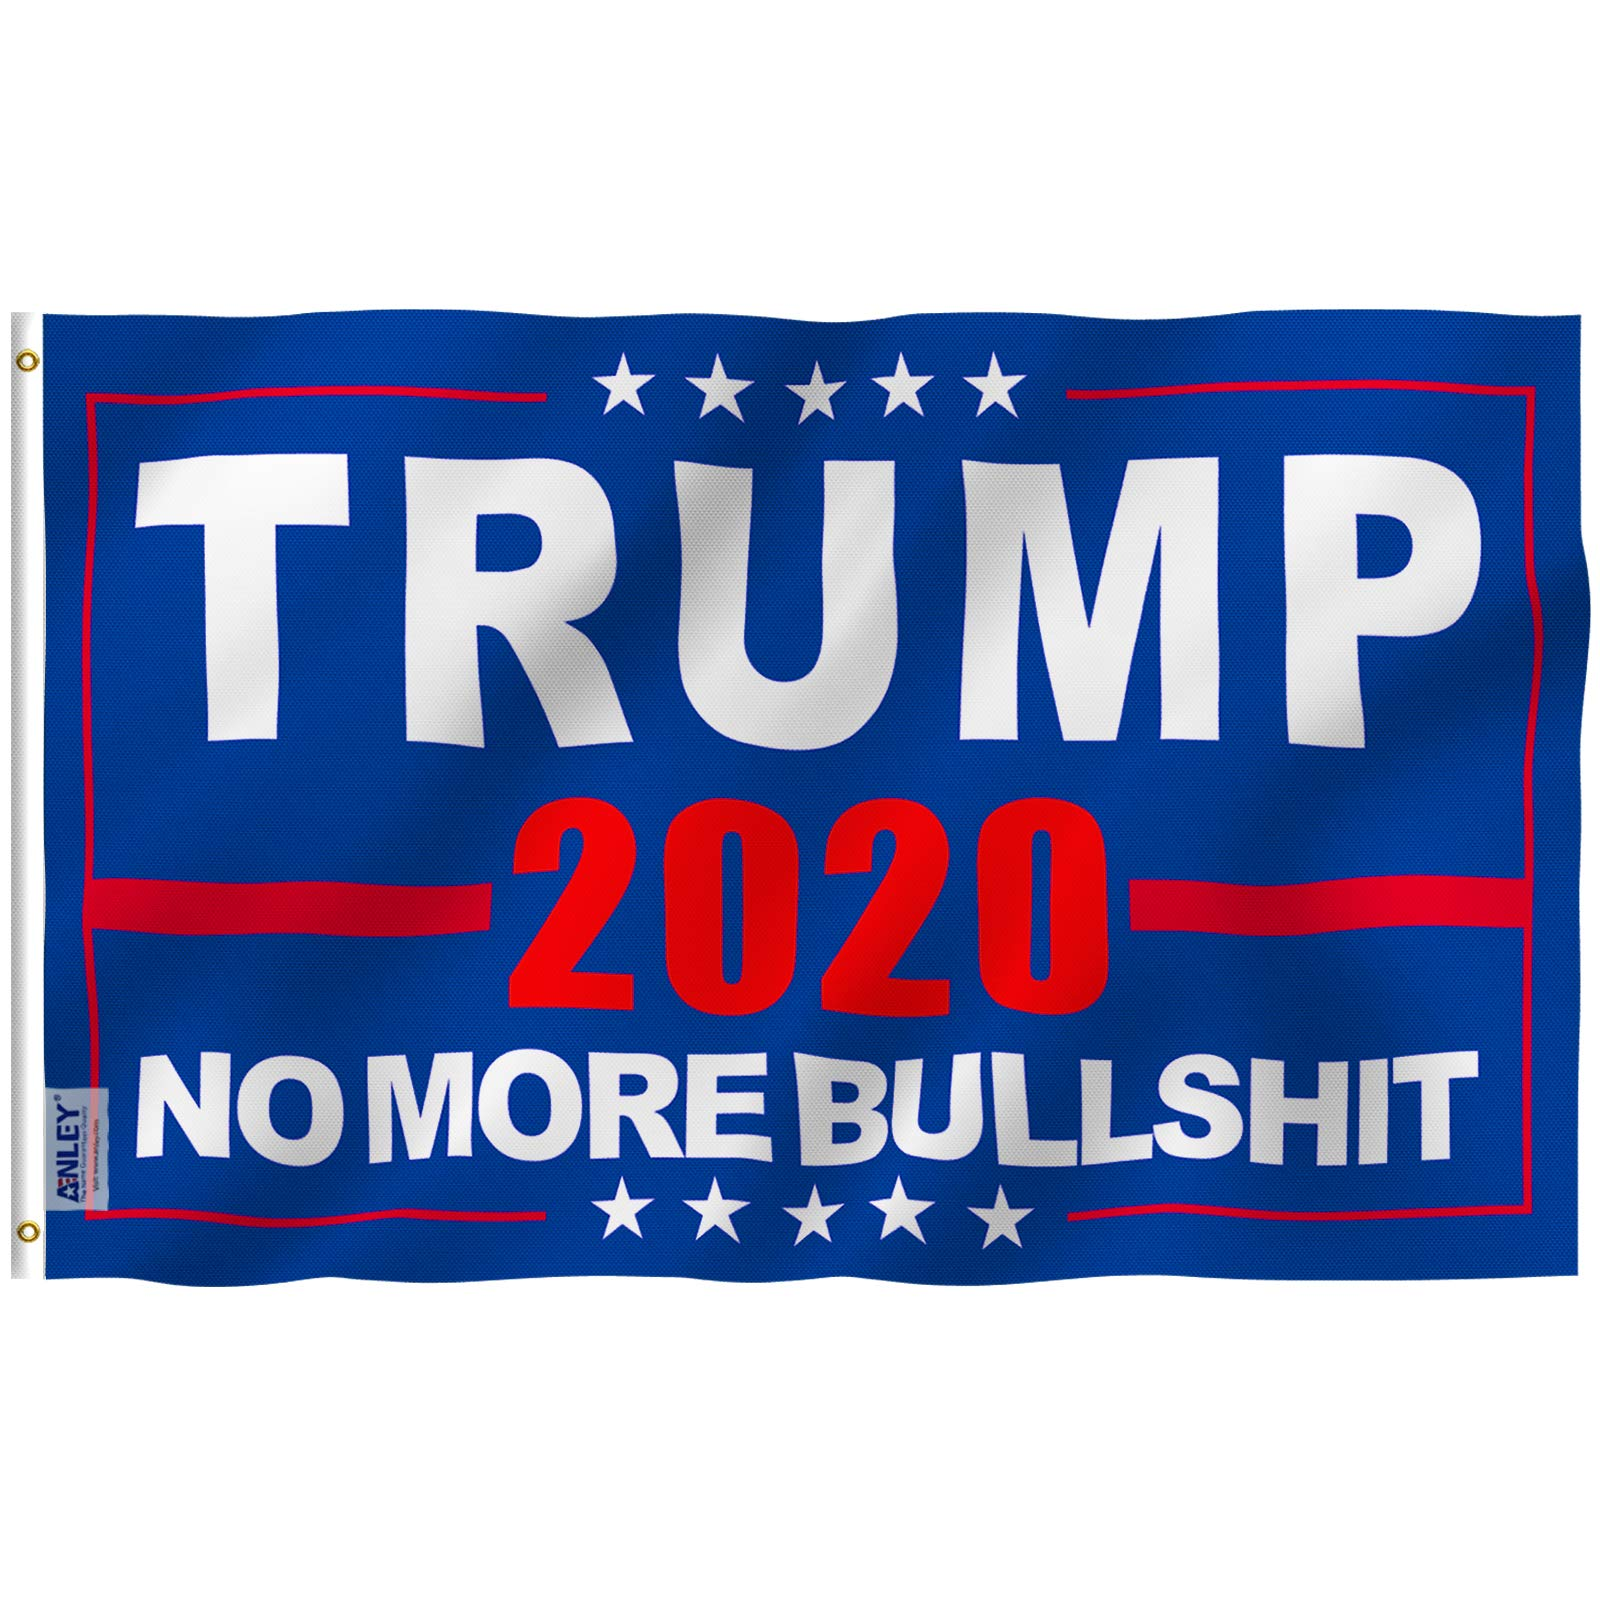 Anley Fly Breeze 3×5 Foot Donald Trump 2020 Flag – Vivid Color And UV Fade Resistant – Canvas Header And Double Stitched – NO More Bullshit Flags Polyester With Brass Grommets 3 X 5 Ft